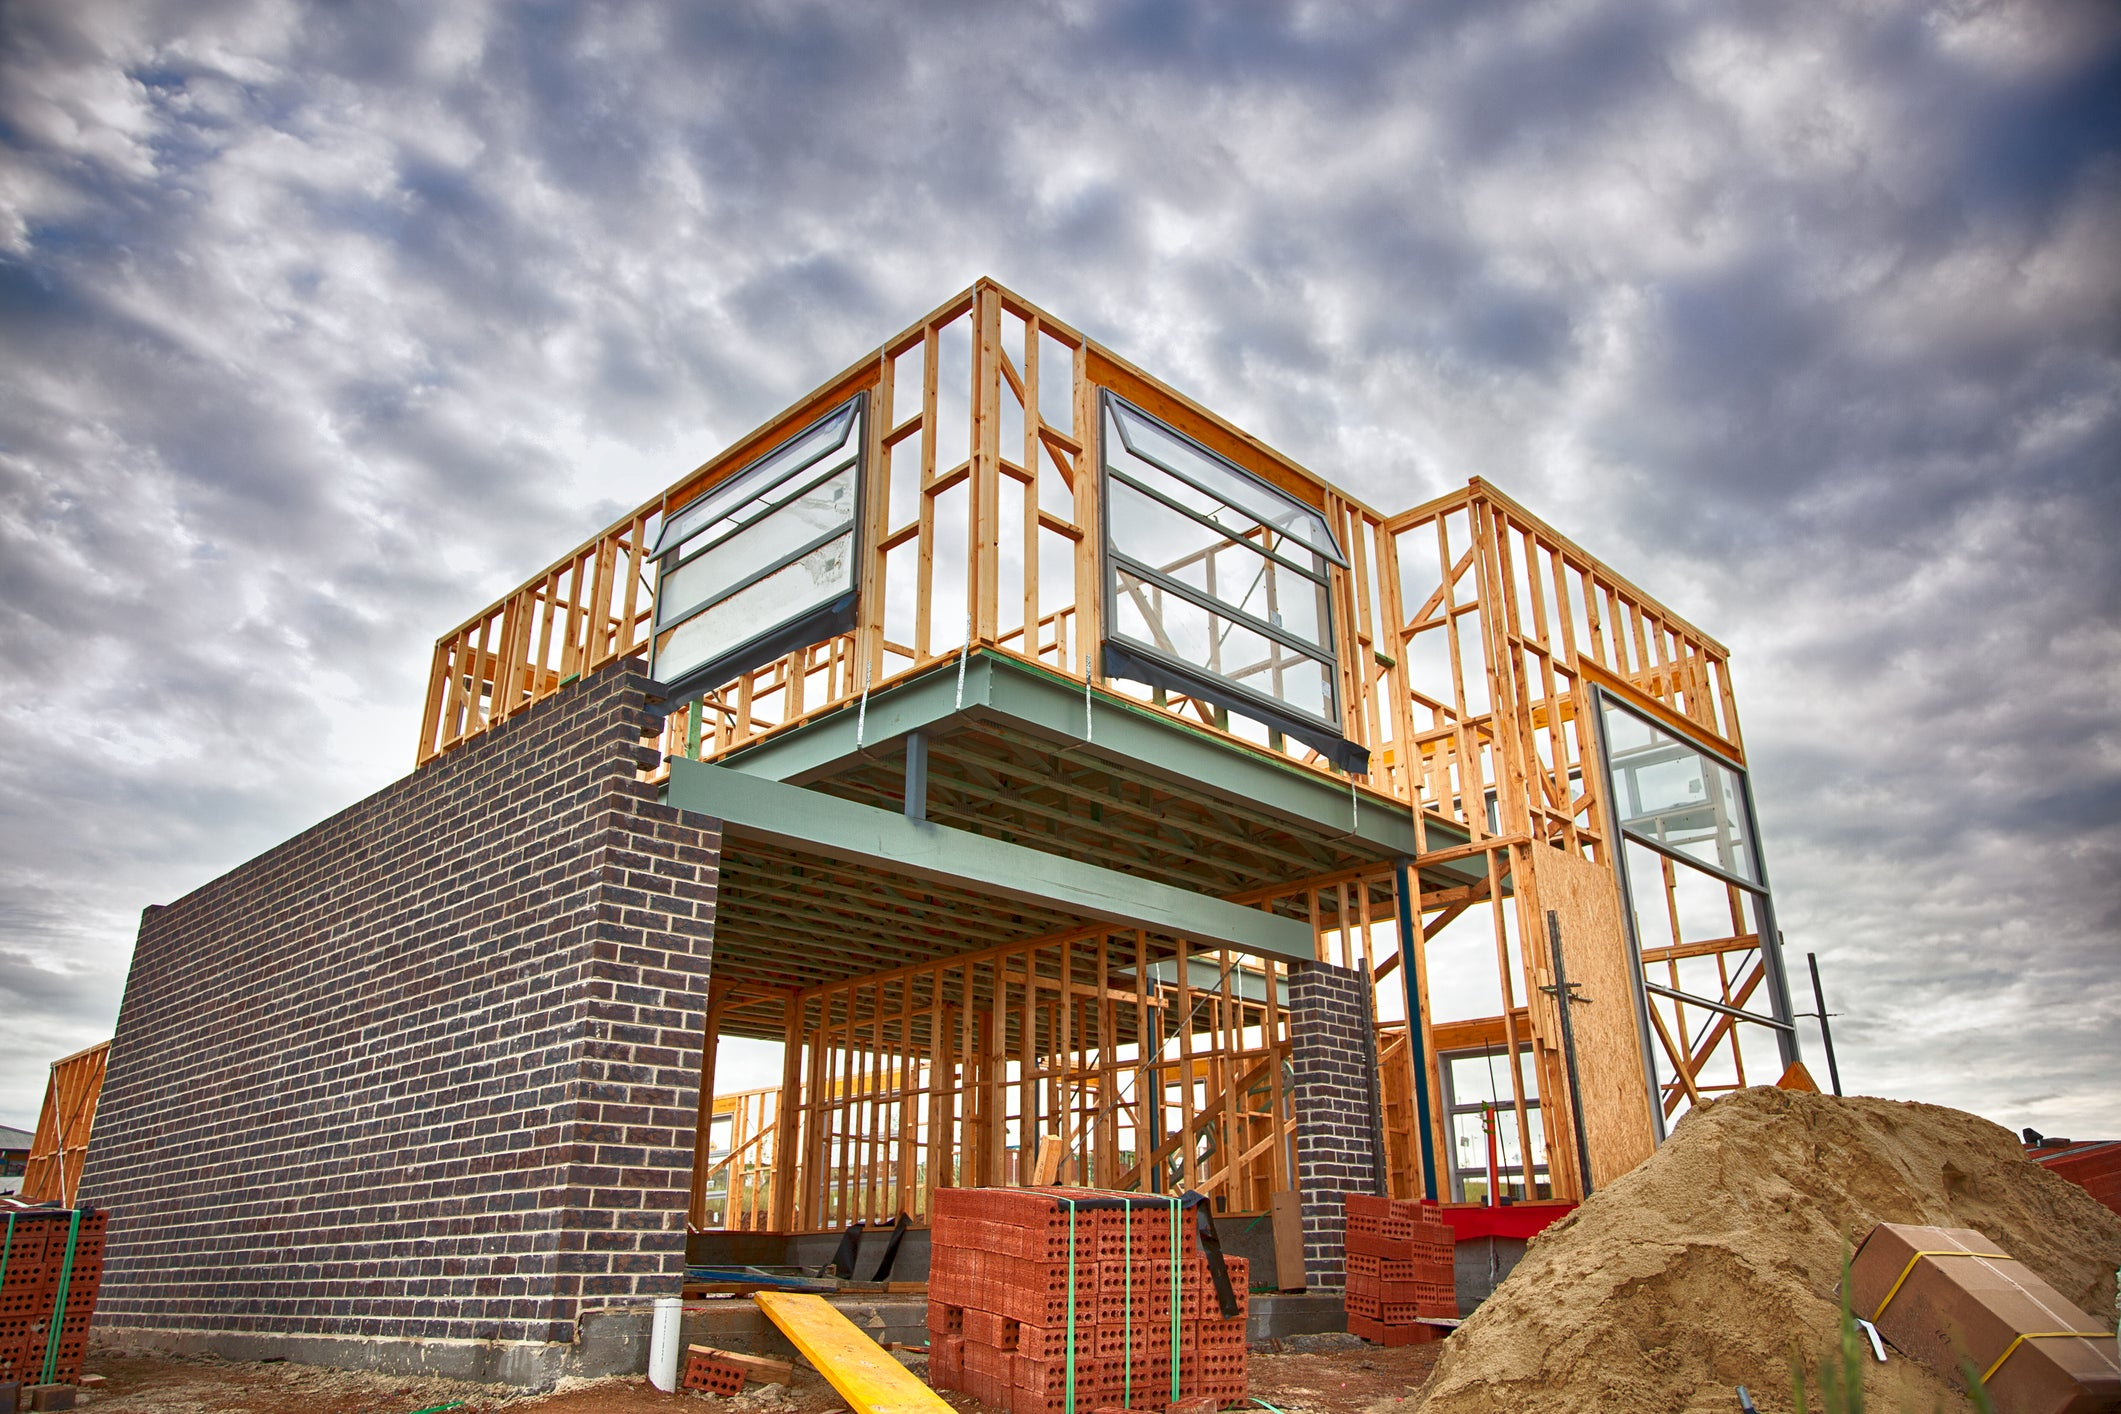 Why Shares of Builders FirstSource, Inc  Popped 16% Today